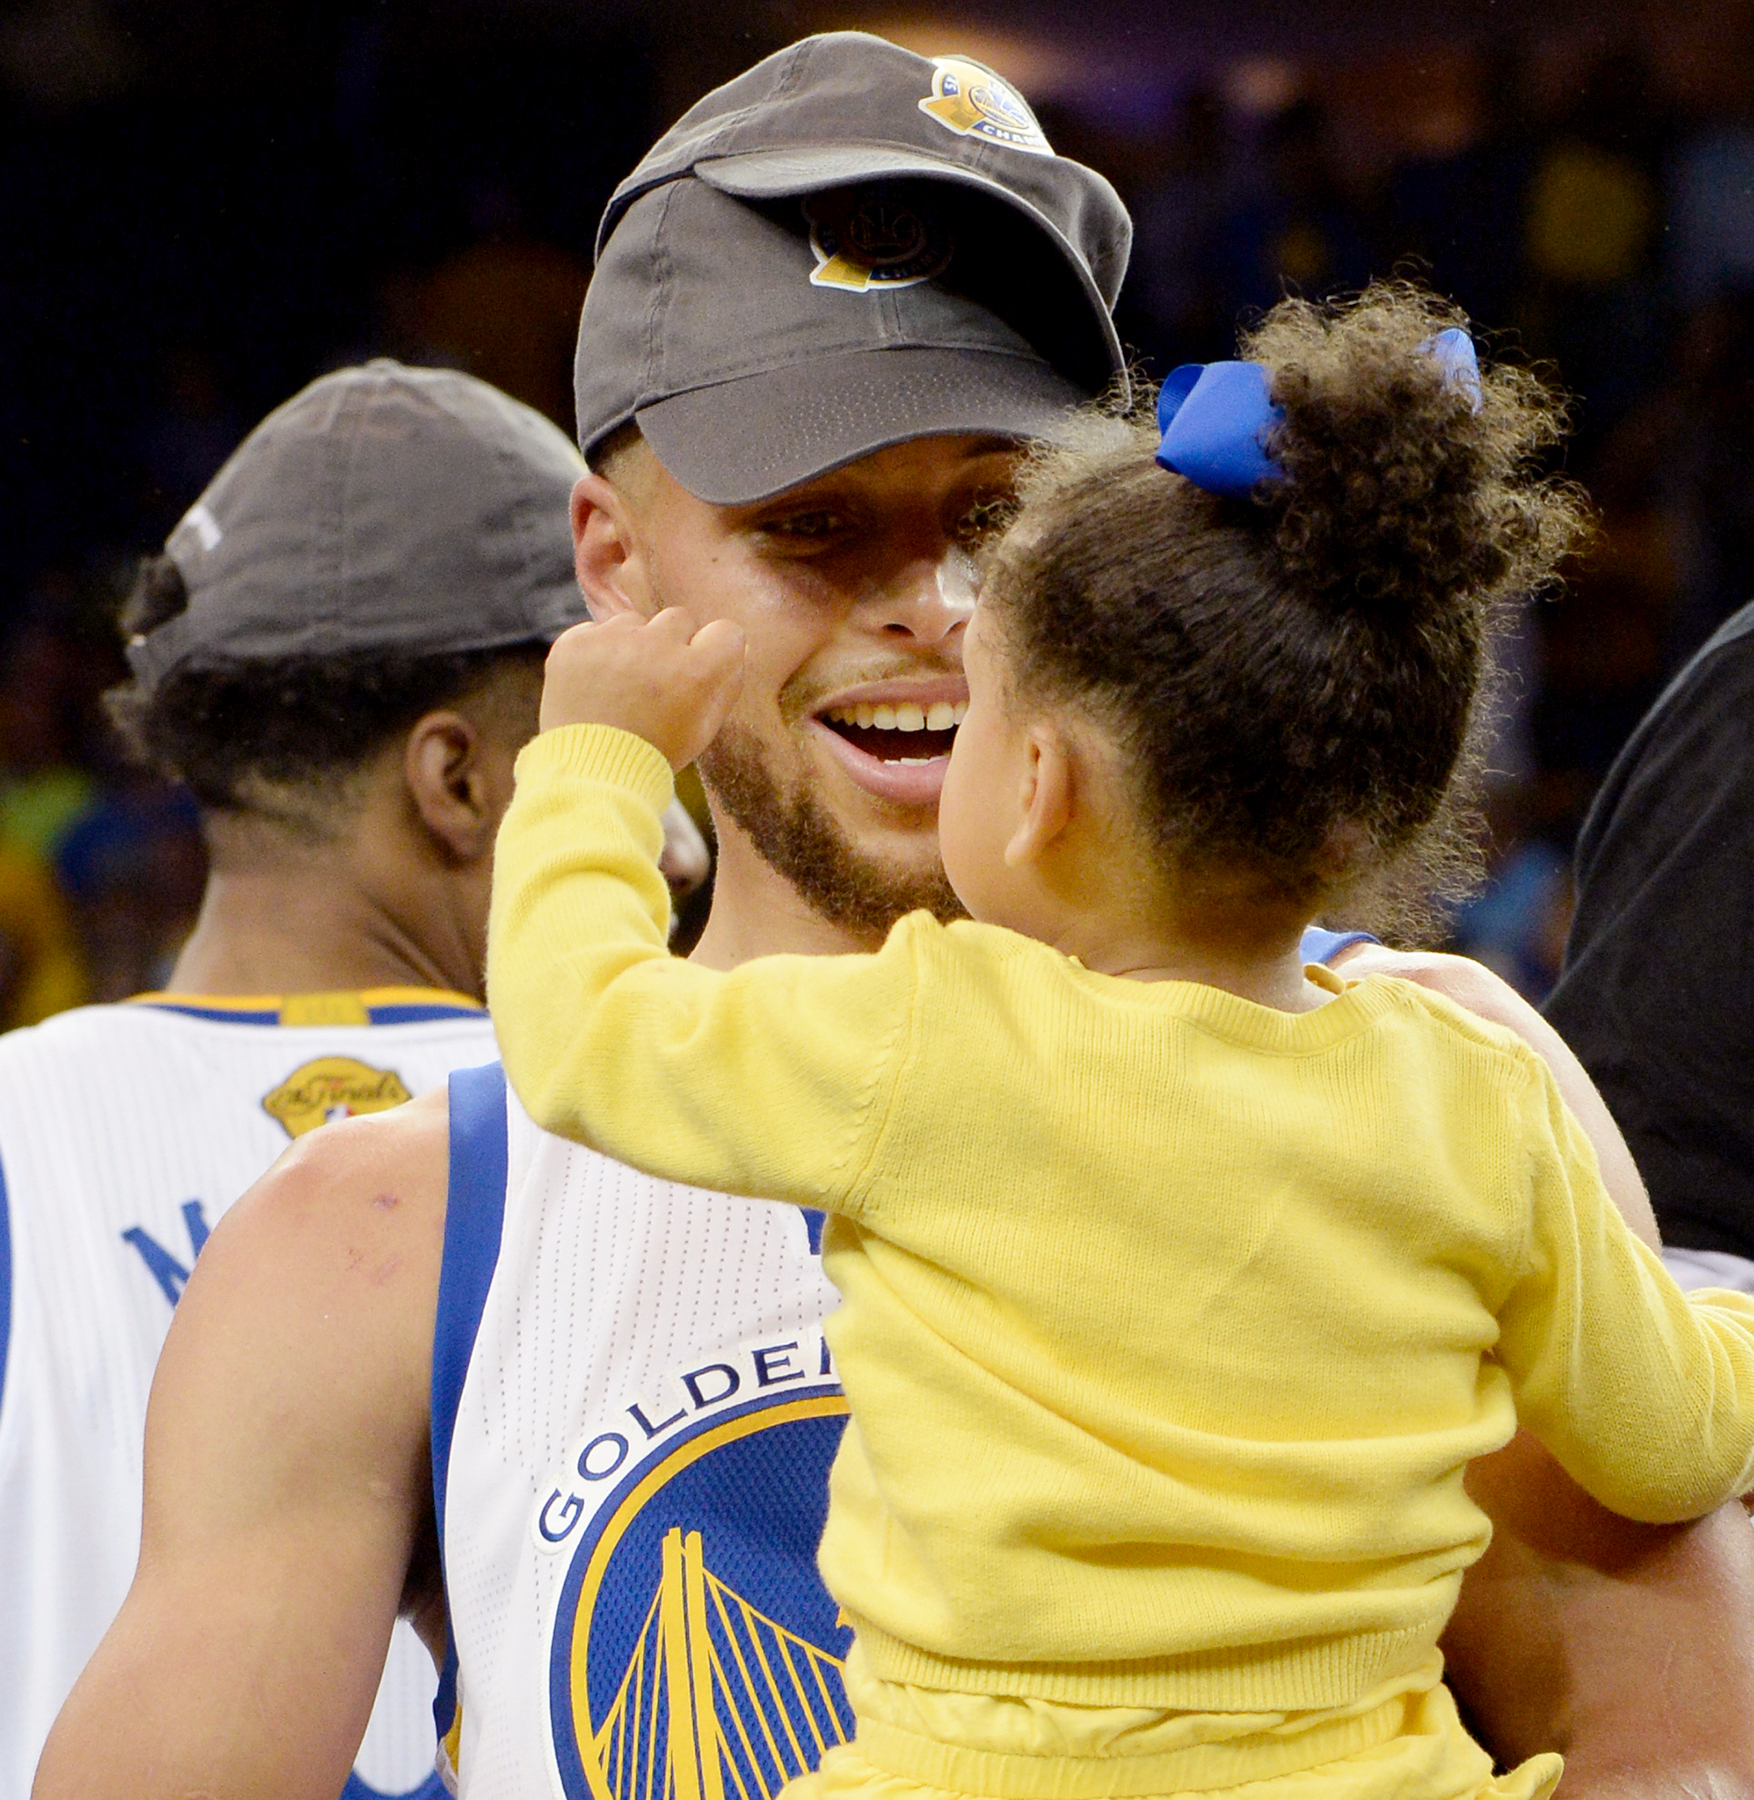 Stephen Curry #30 of the Golden State Warriors celebrates after winning the 2017 NBA Finals on June 12, 2017 at ORACLE Arena in Oakland, California.